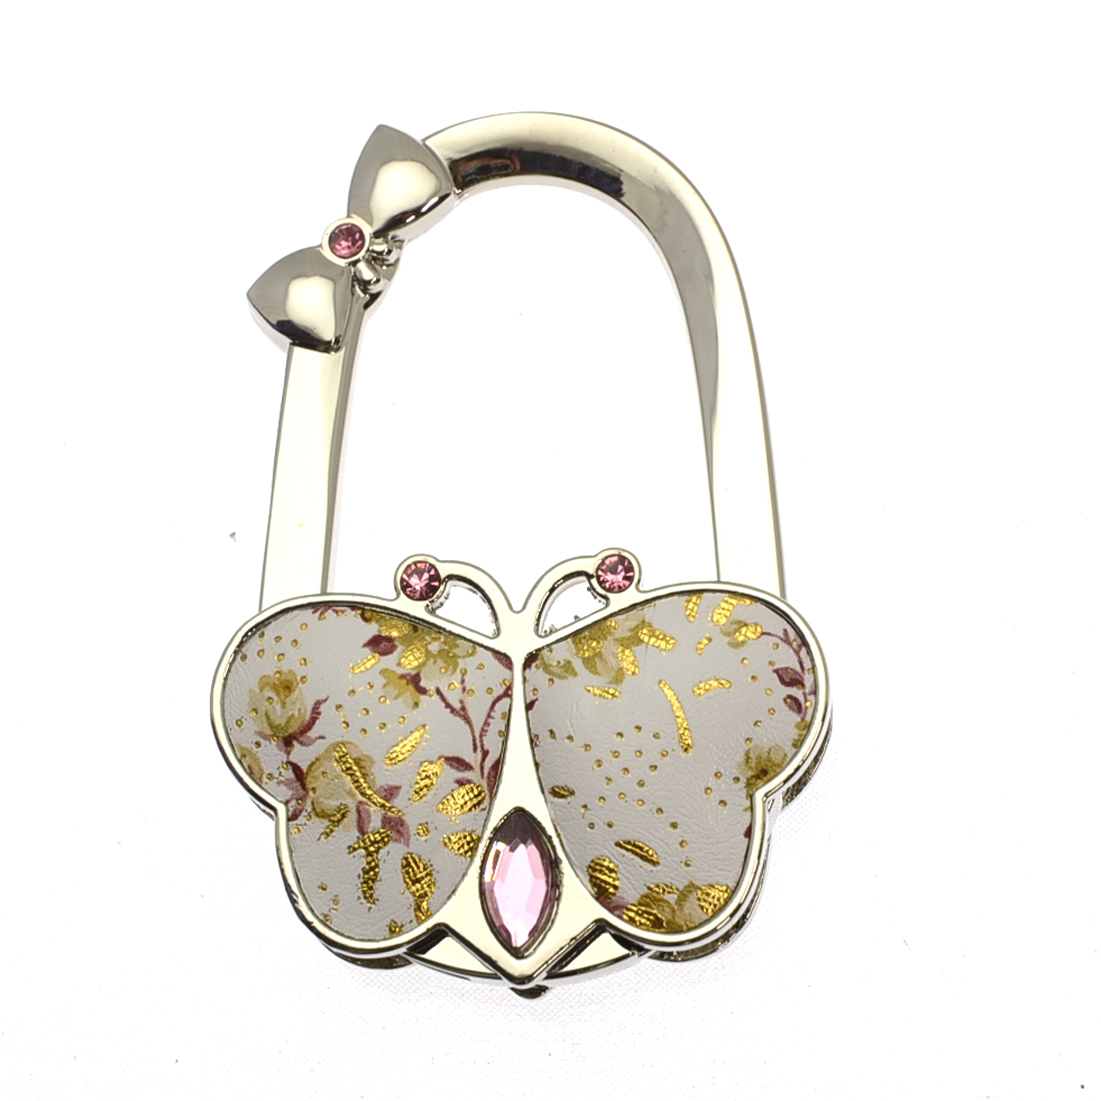 Foldable Vintage Floral Teardrop Jewel Purse Hanger